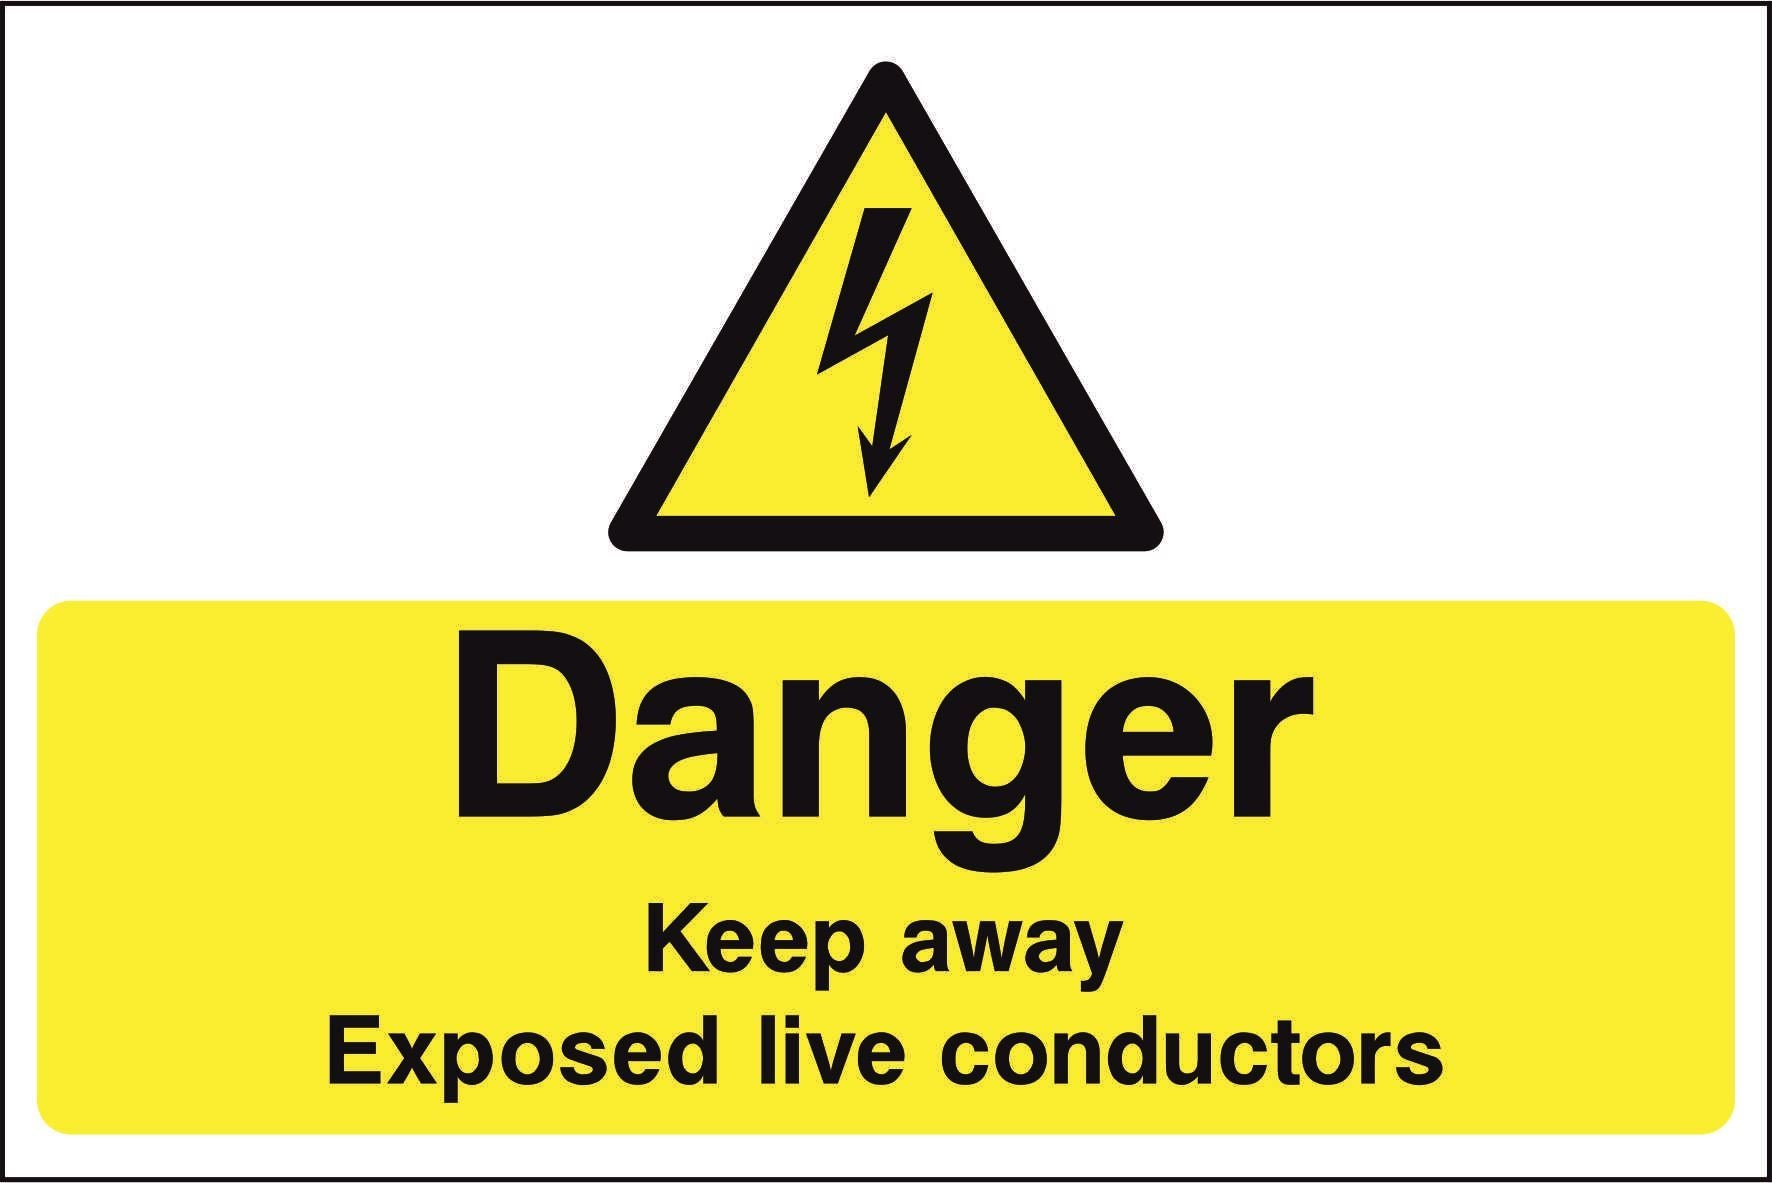 DANGER Keep away Exposed live conductors